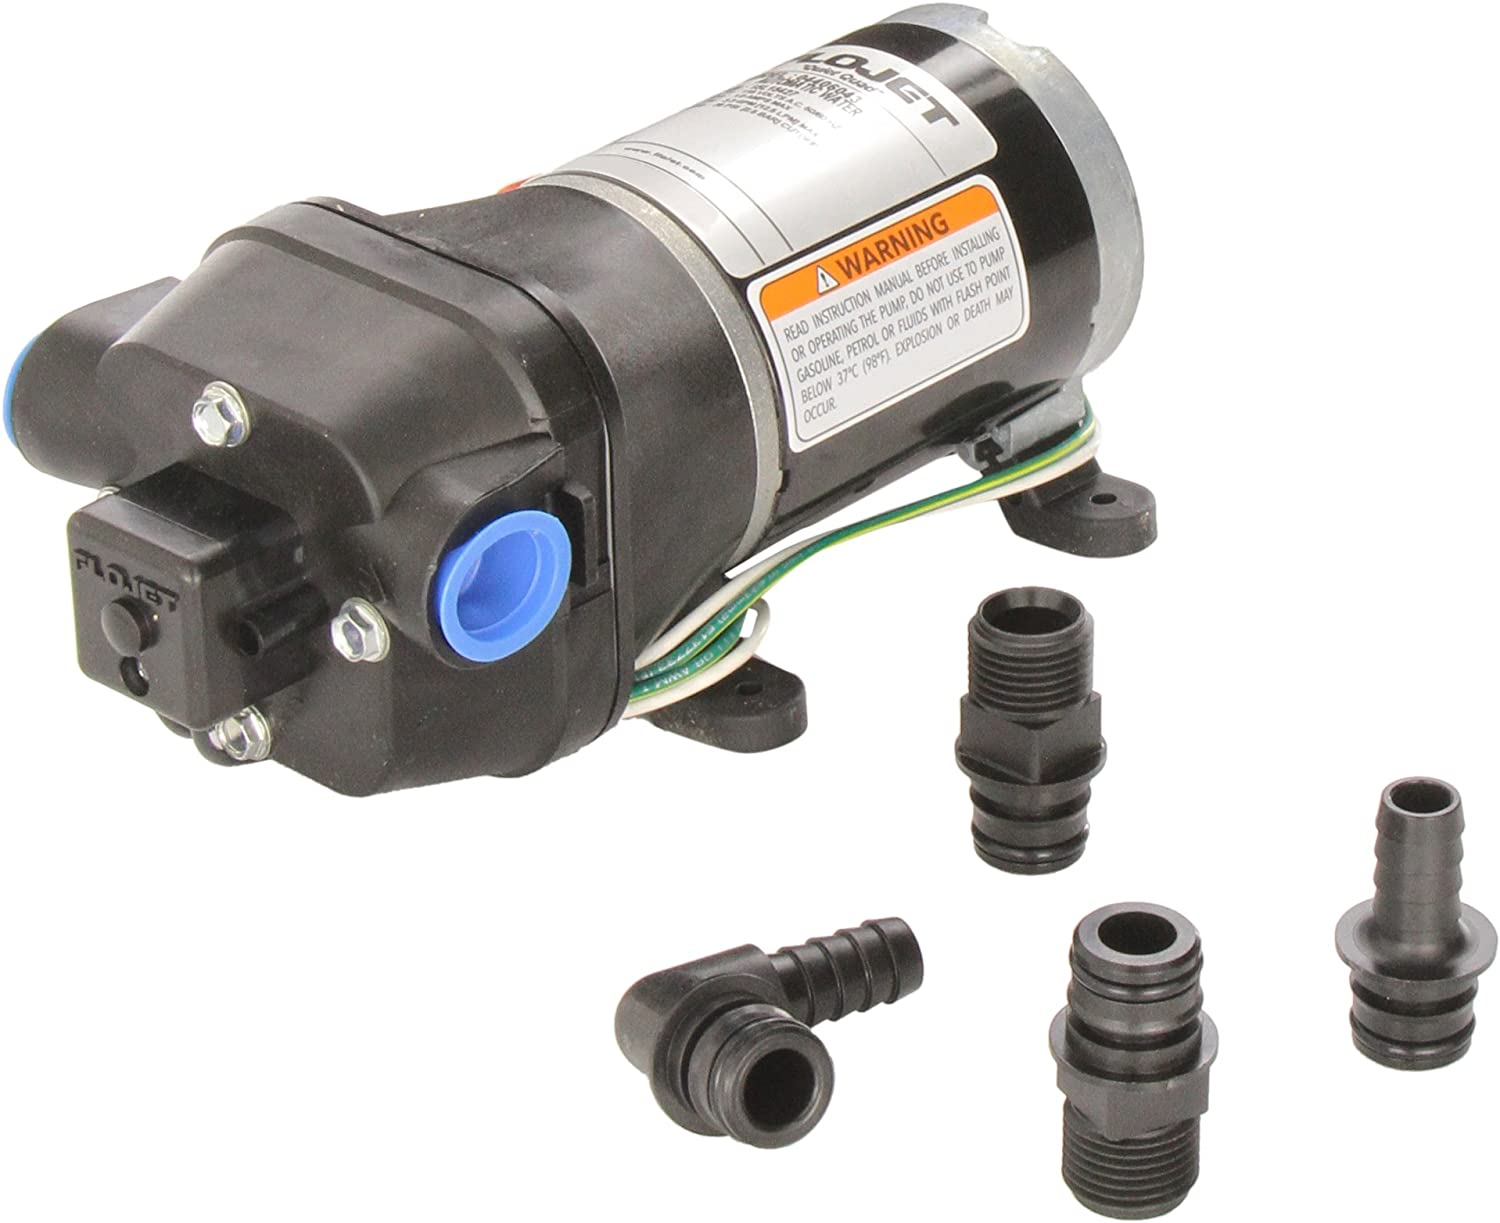 Fittings Replace Flojet High Pressure Water Pump 12 V DC  40 PSI 4.5 GPM 1//2 in